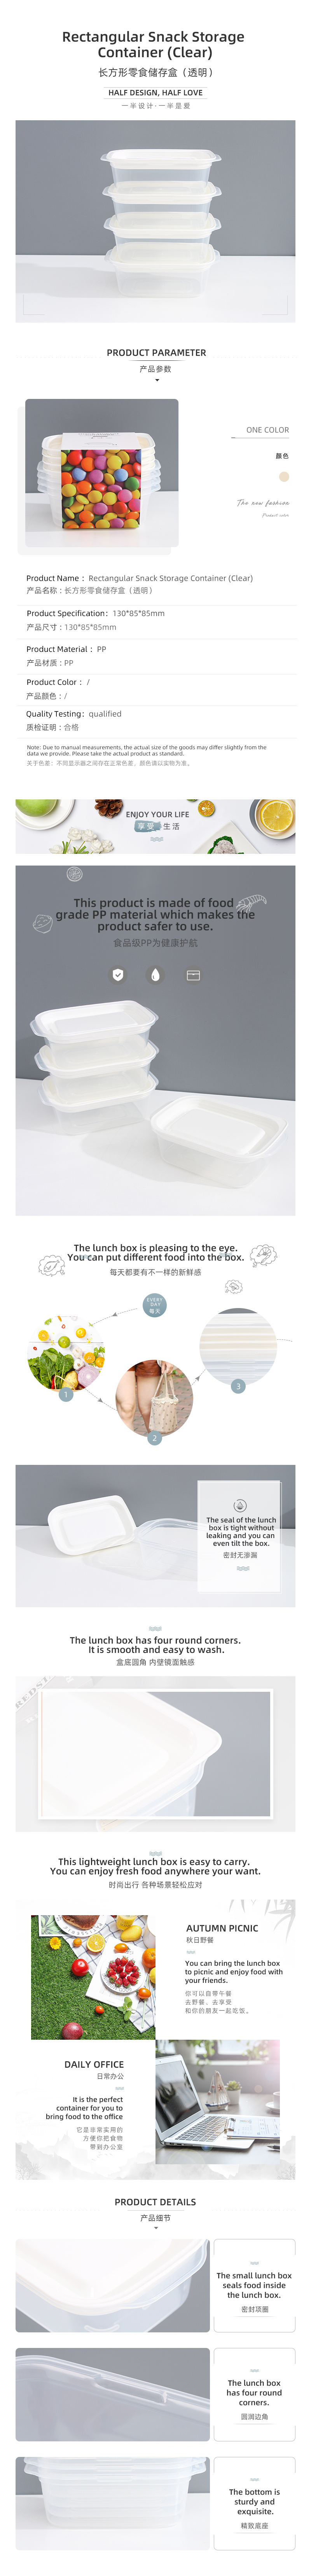 Rectangular Snack Storage Container (Clear)